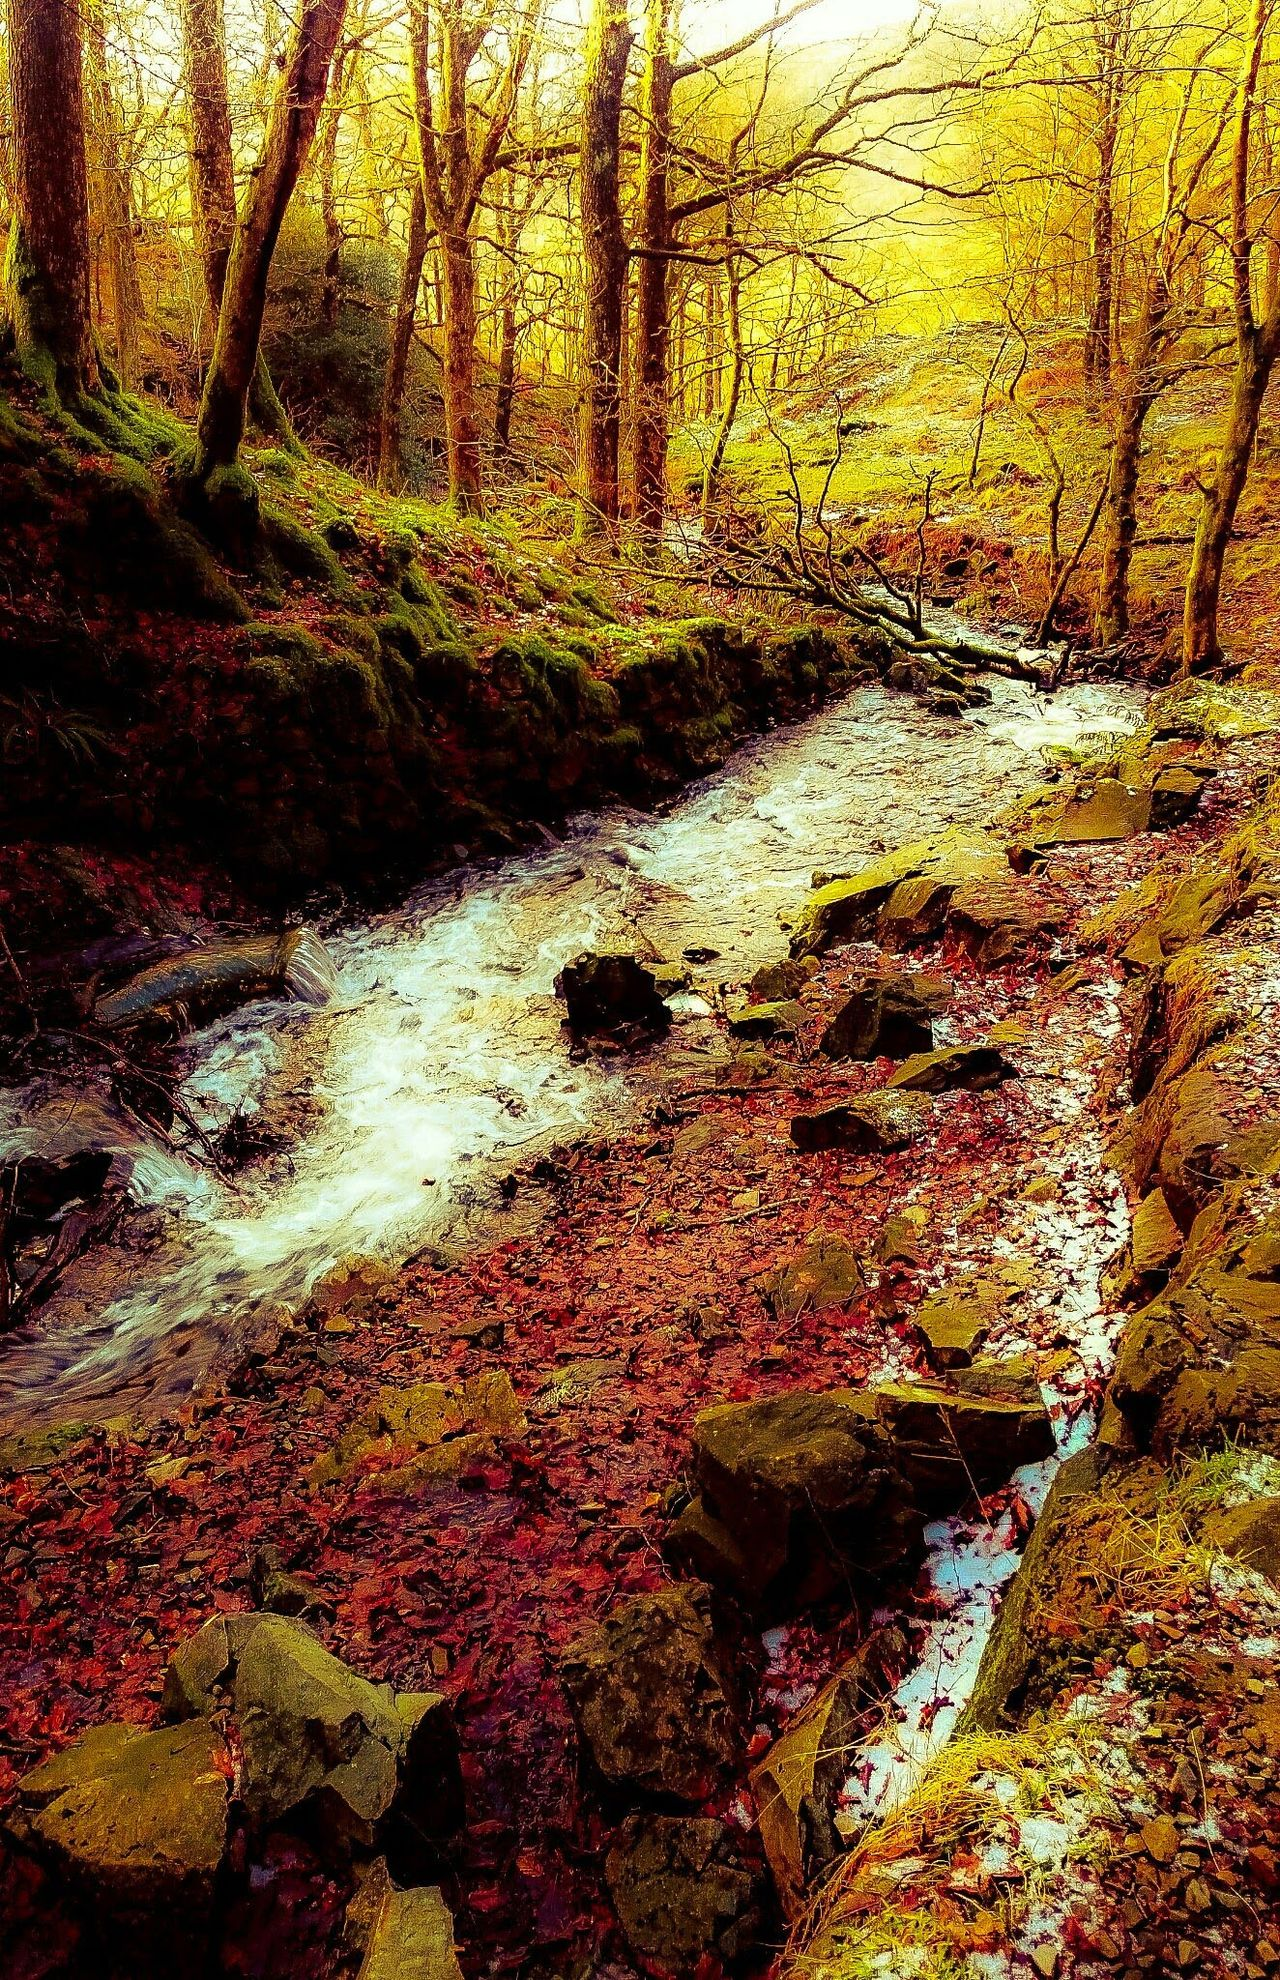 Autumn Colors Stream - Flowing Water Colour Image Off The Beaten Path Wood Art Lake District Tranquility Cumbria England UK Outdoors Forest Beauty In Nature Colourful Nature Day Tree Art Colorsplash Trippy! Fantasy No People Growth WoodLand Sunlight Outdoor Photography Bautiful Day Project Backgrounds